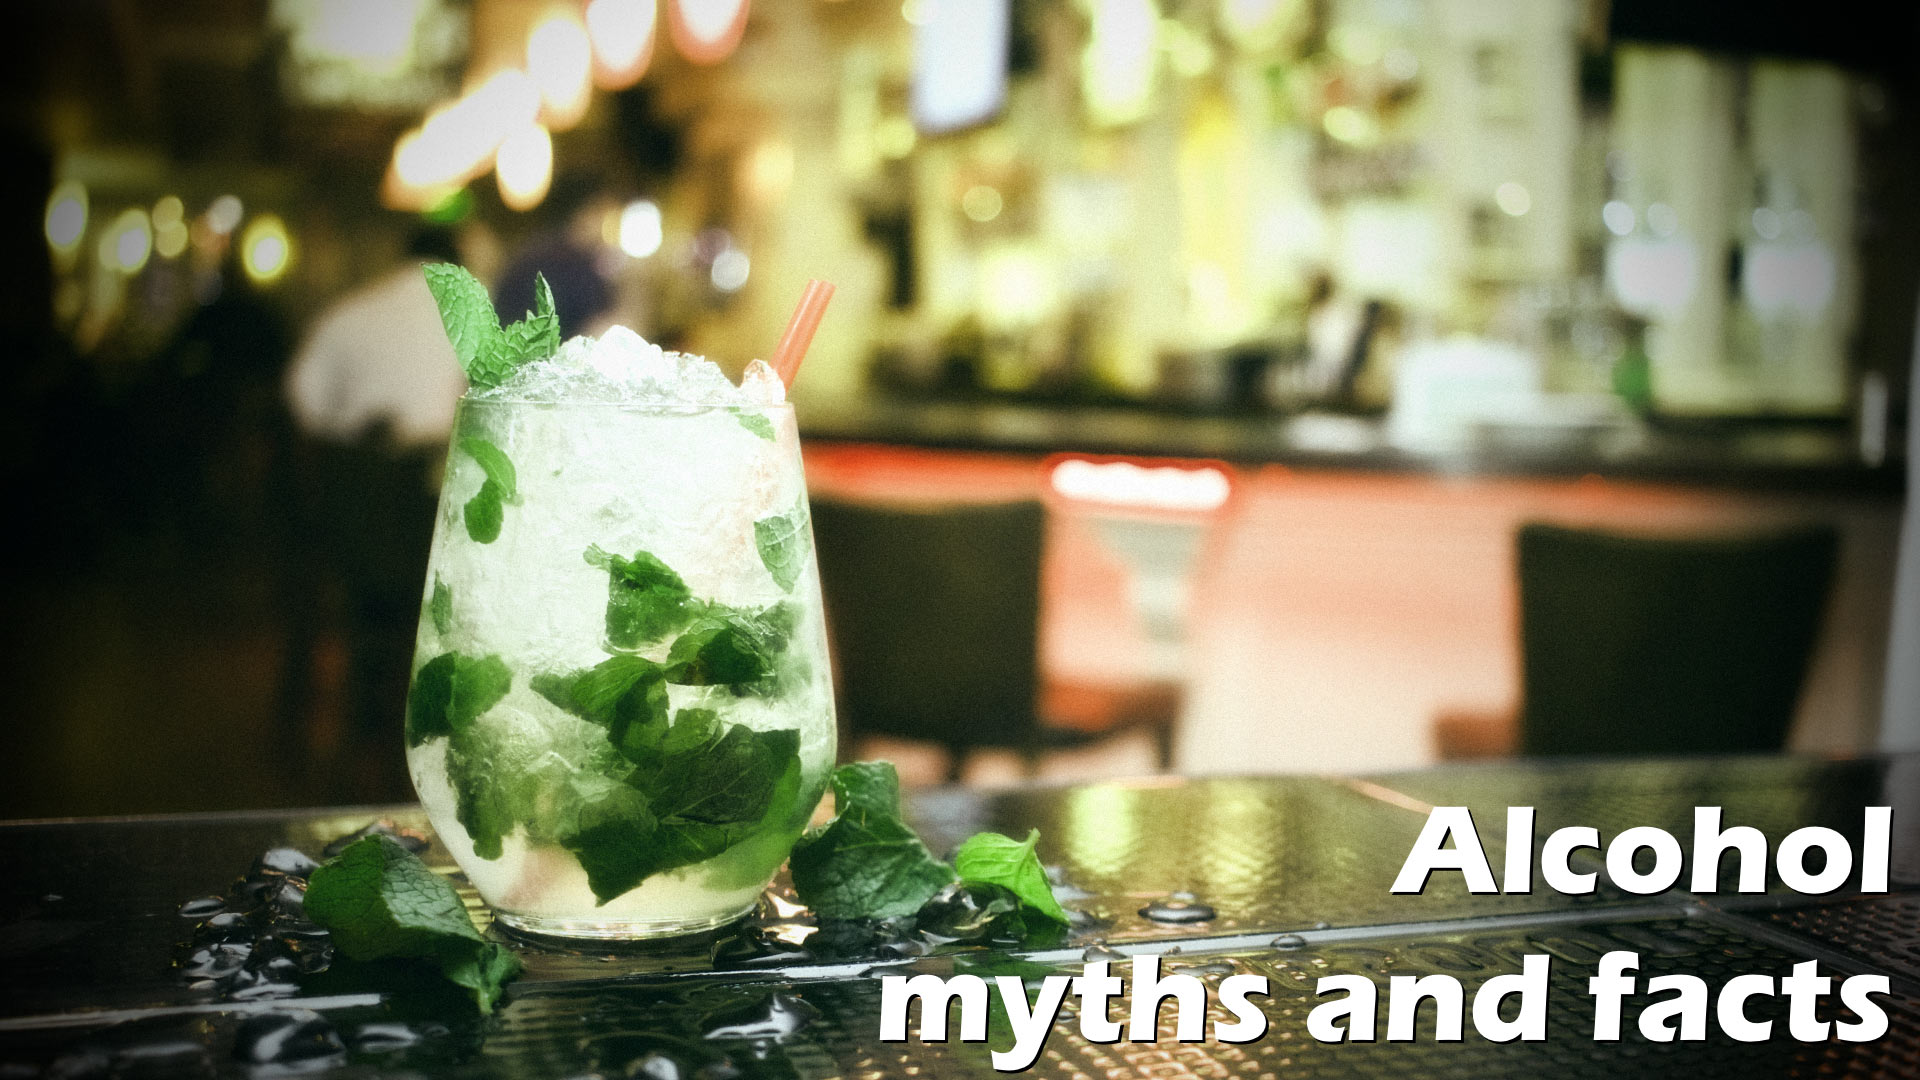 Alcohol myths and facts